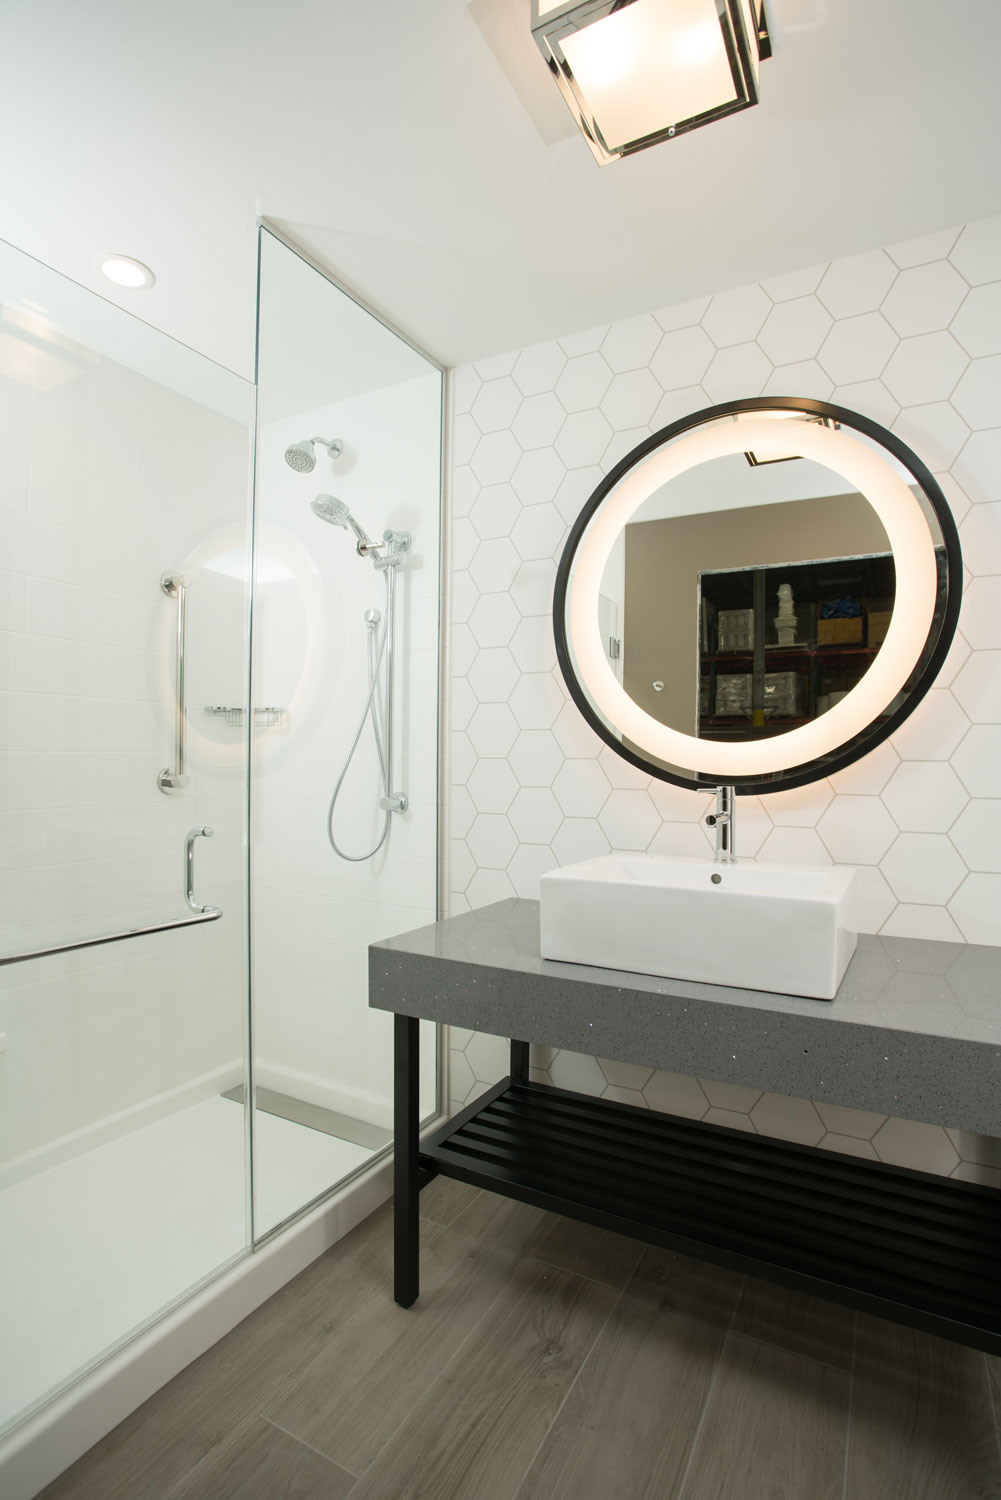 Holiday Inn Nashville TN SurePods Prefab bathroom